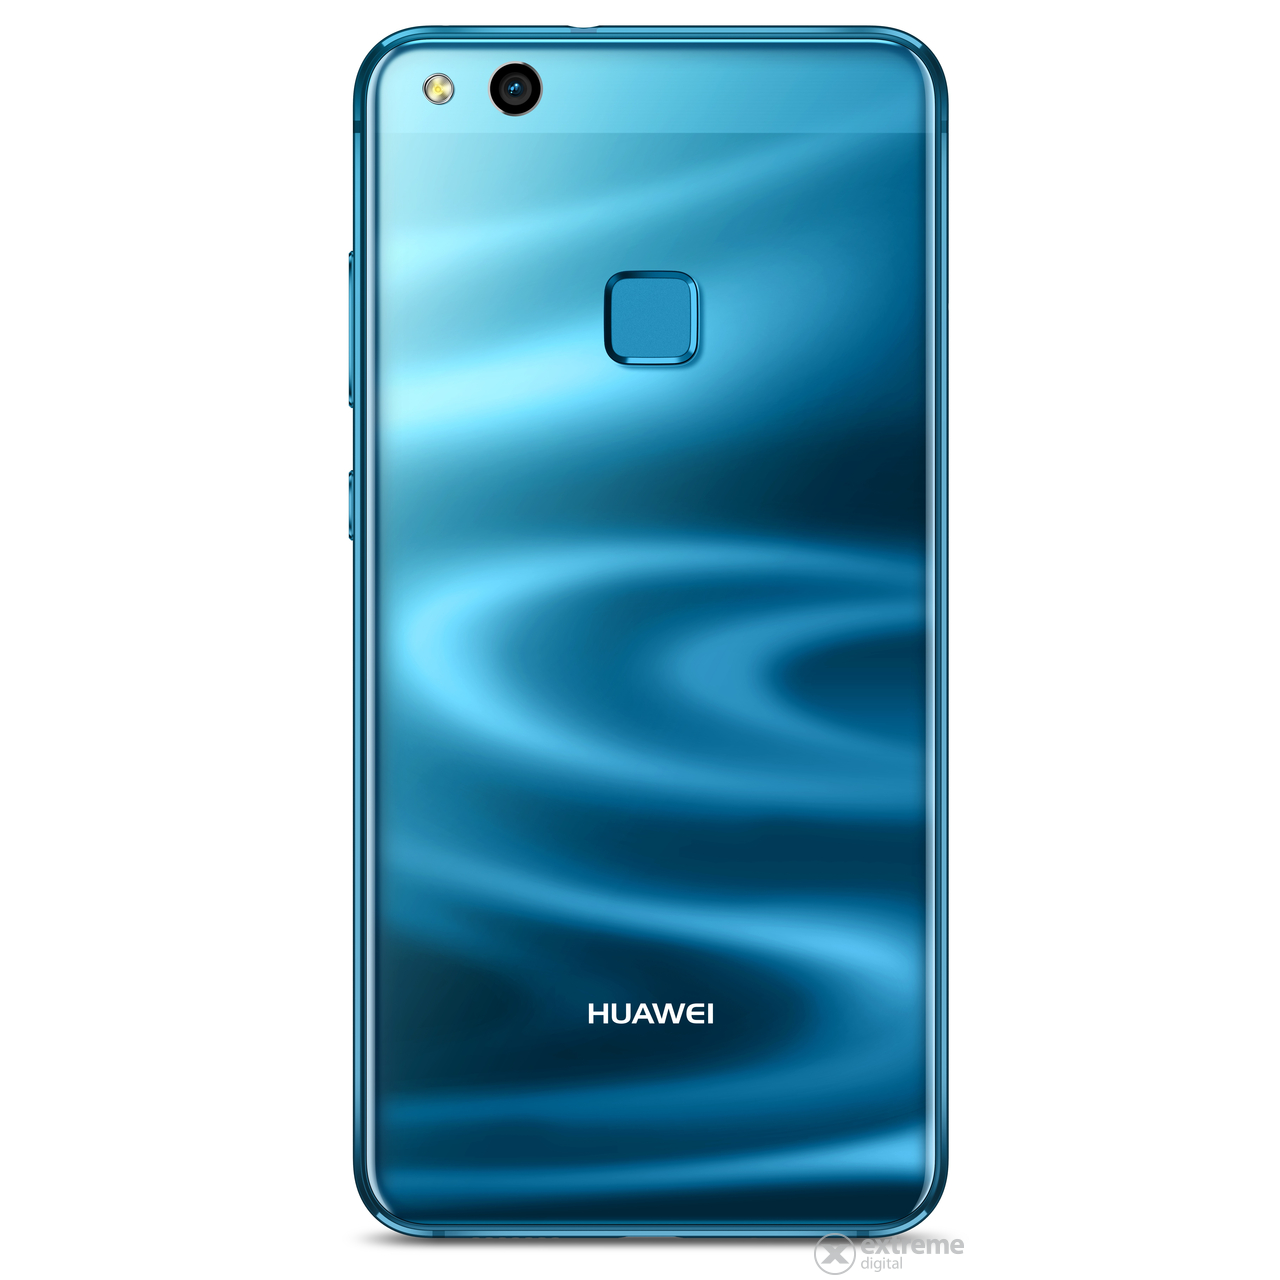 huawei p10 lite dual sim blue android extreme digital. Black Bedroom Furniture Sets. Home Design Ideas